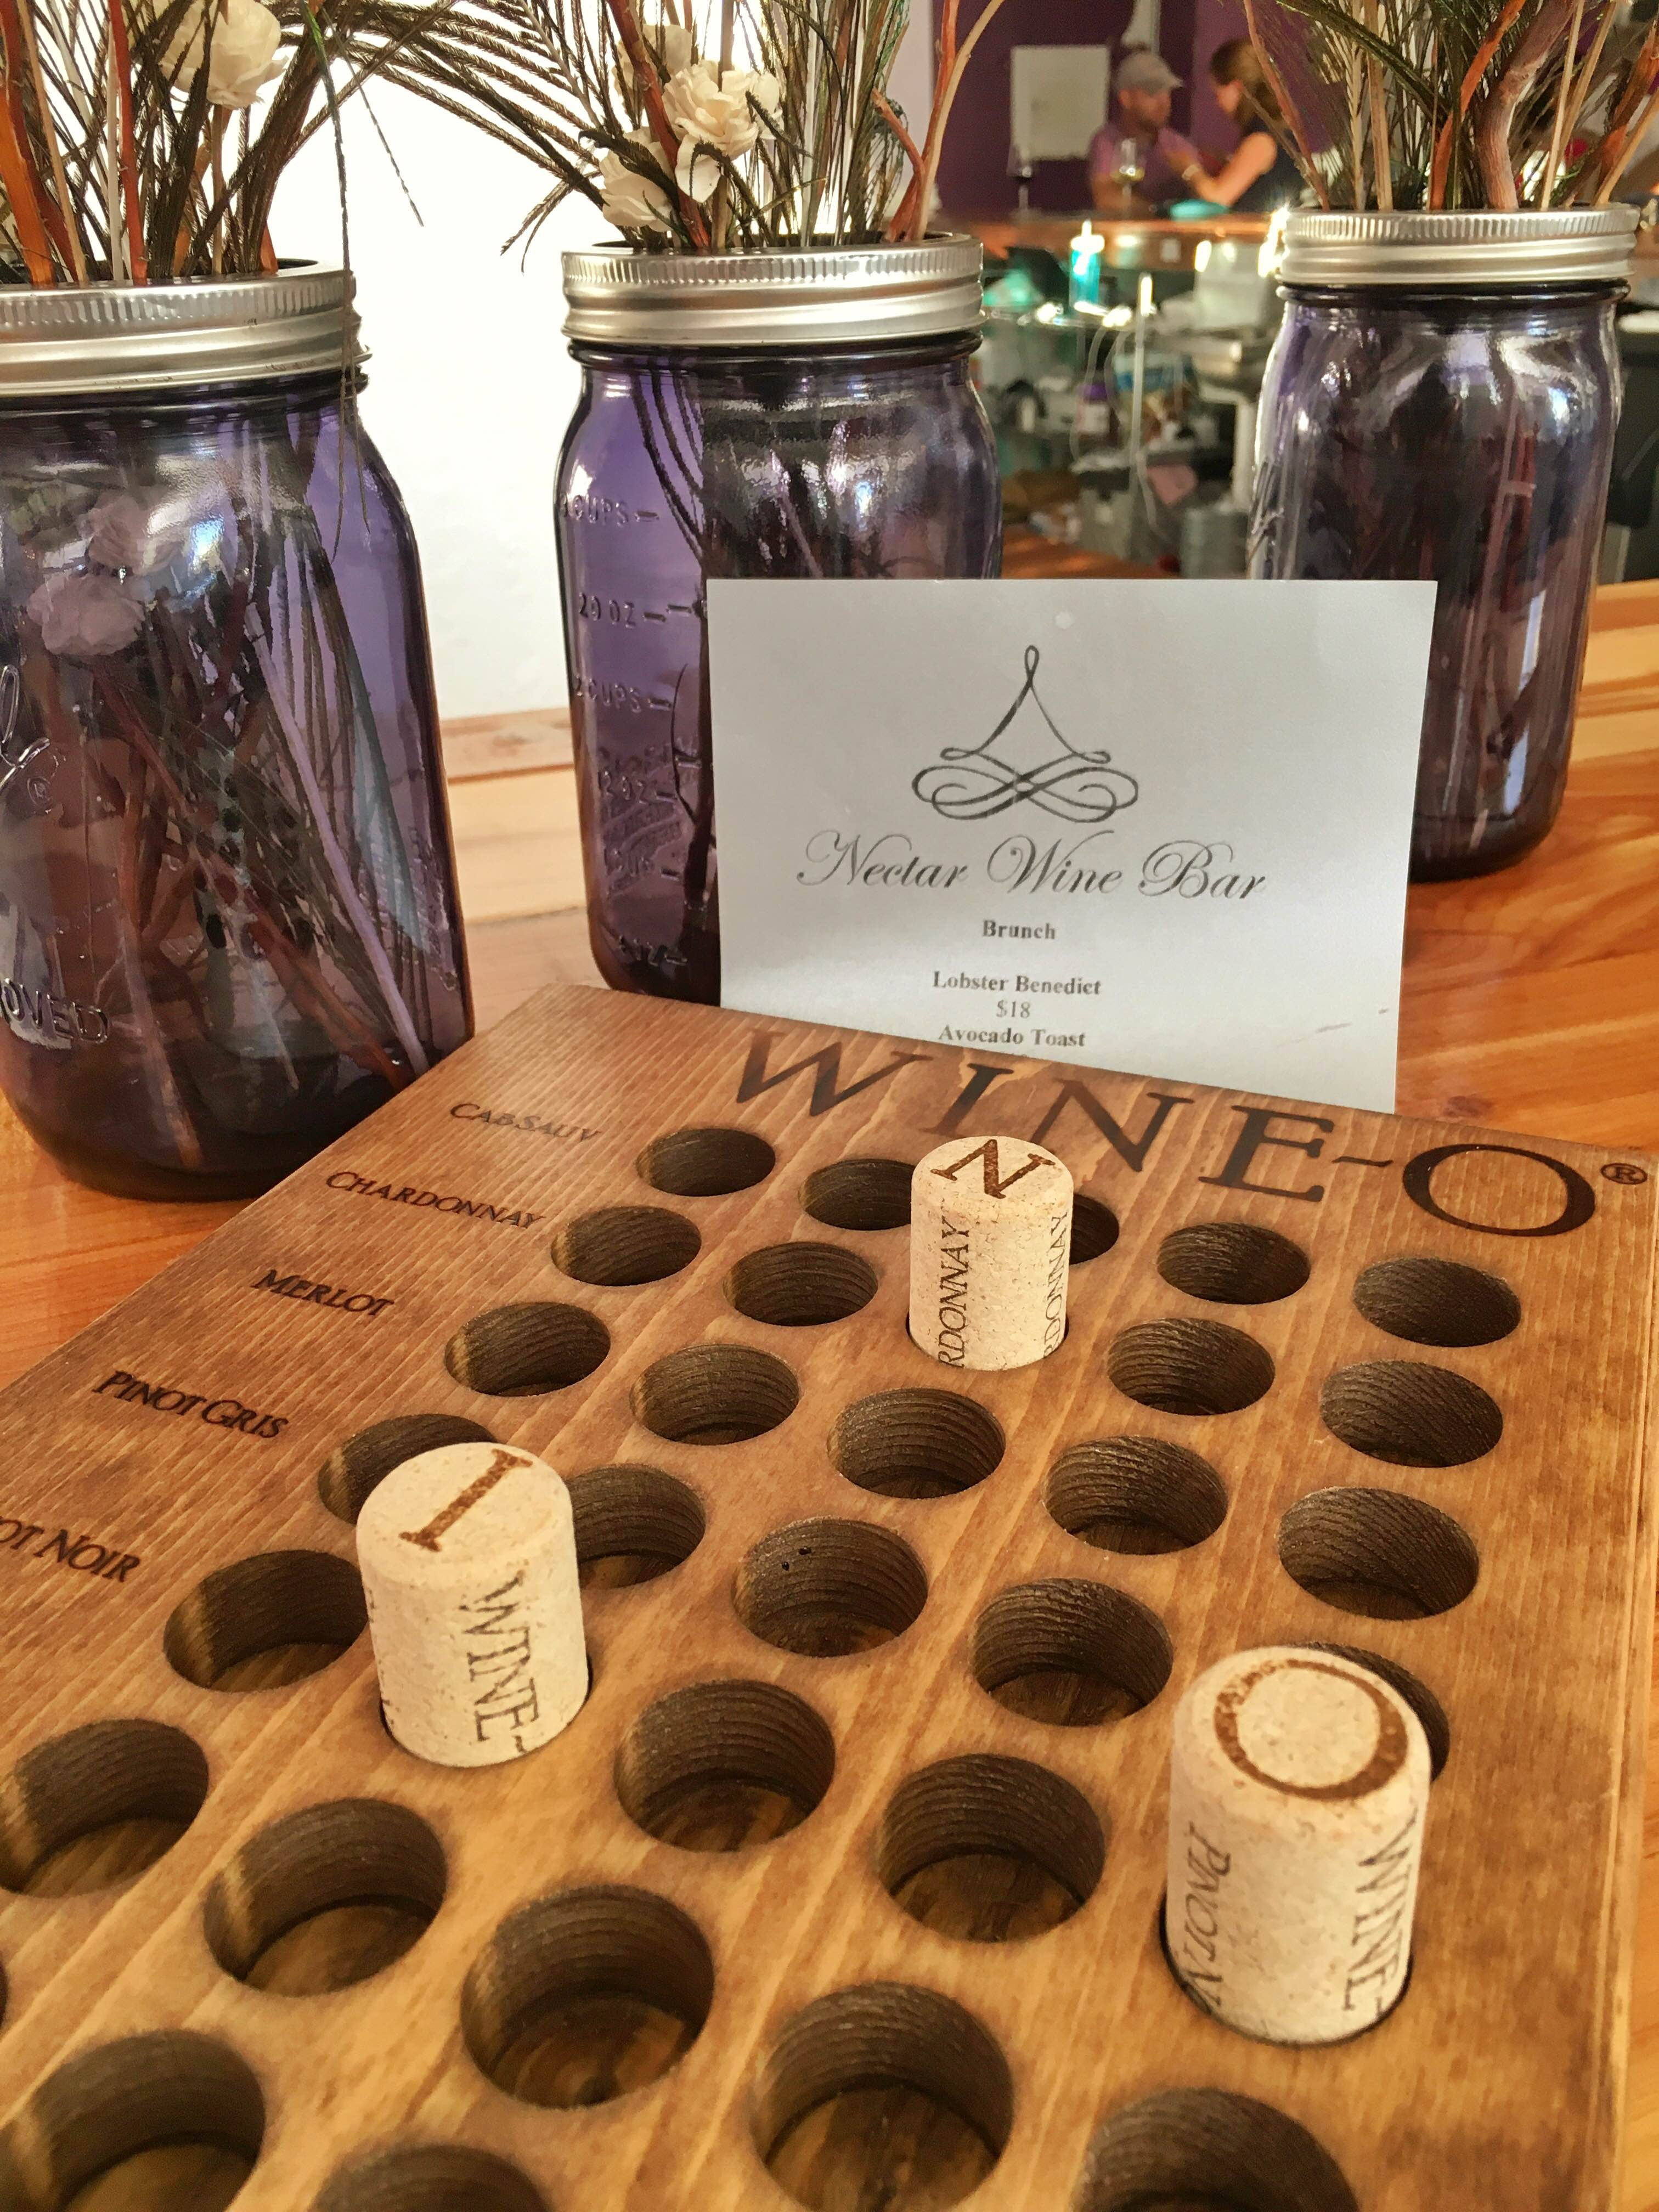 Get to Nectar Wine Bar on Tuesday for Wine-O Bingo | Flavor